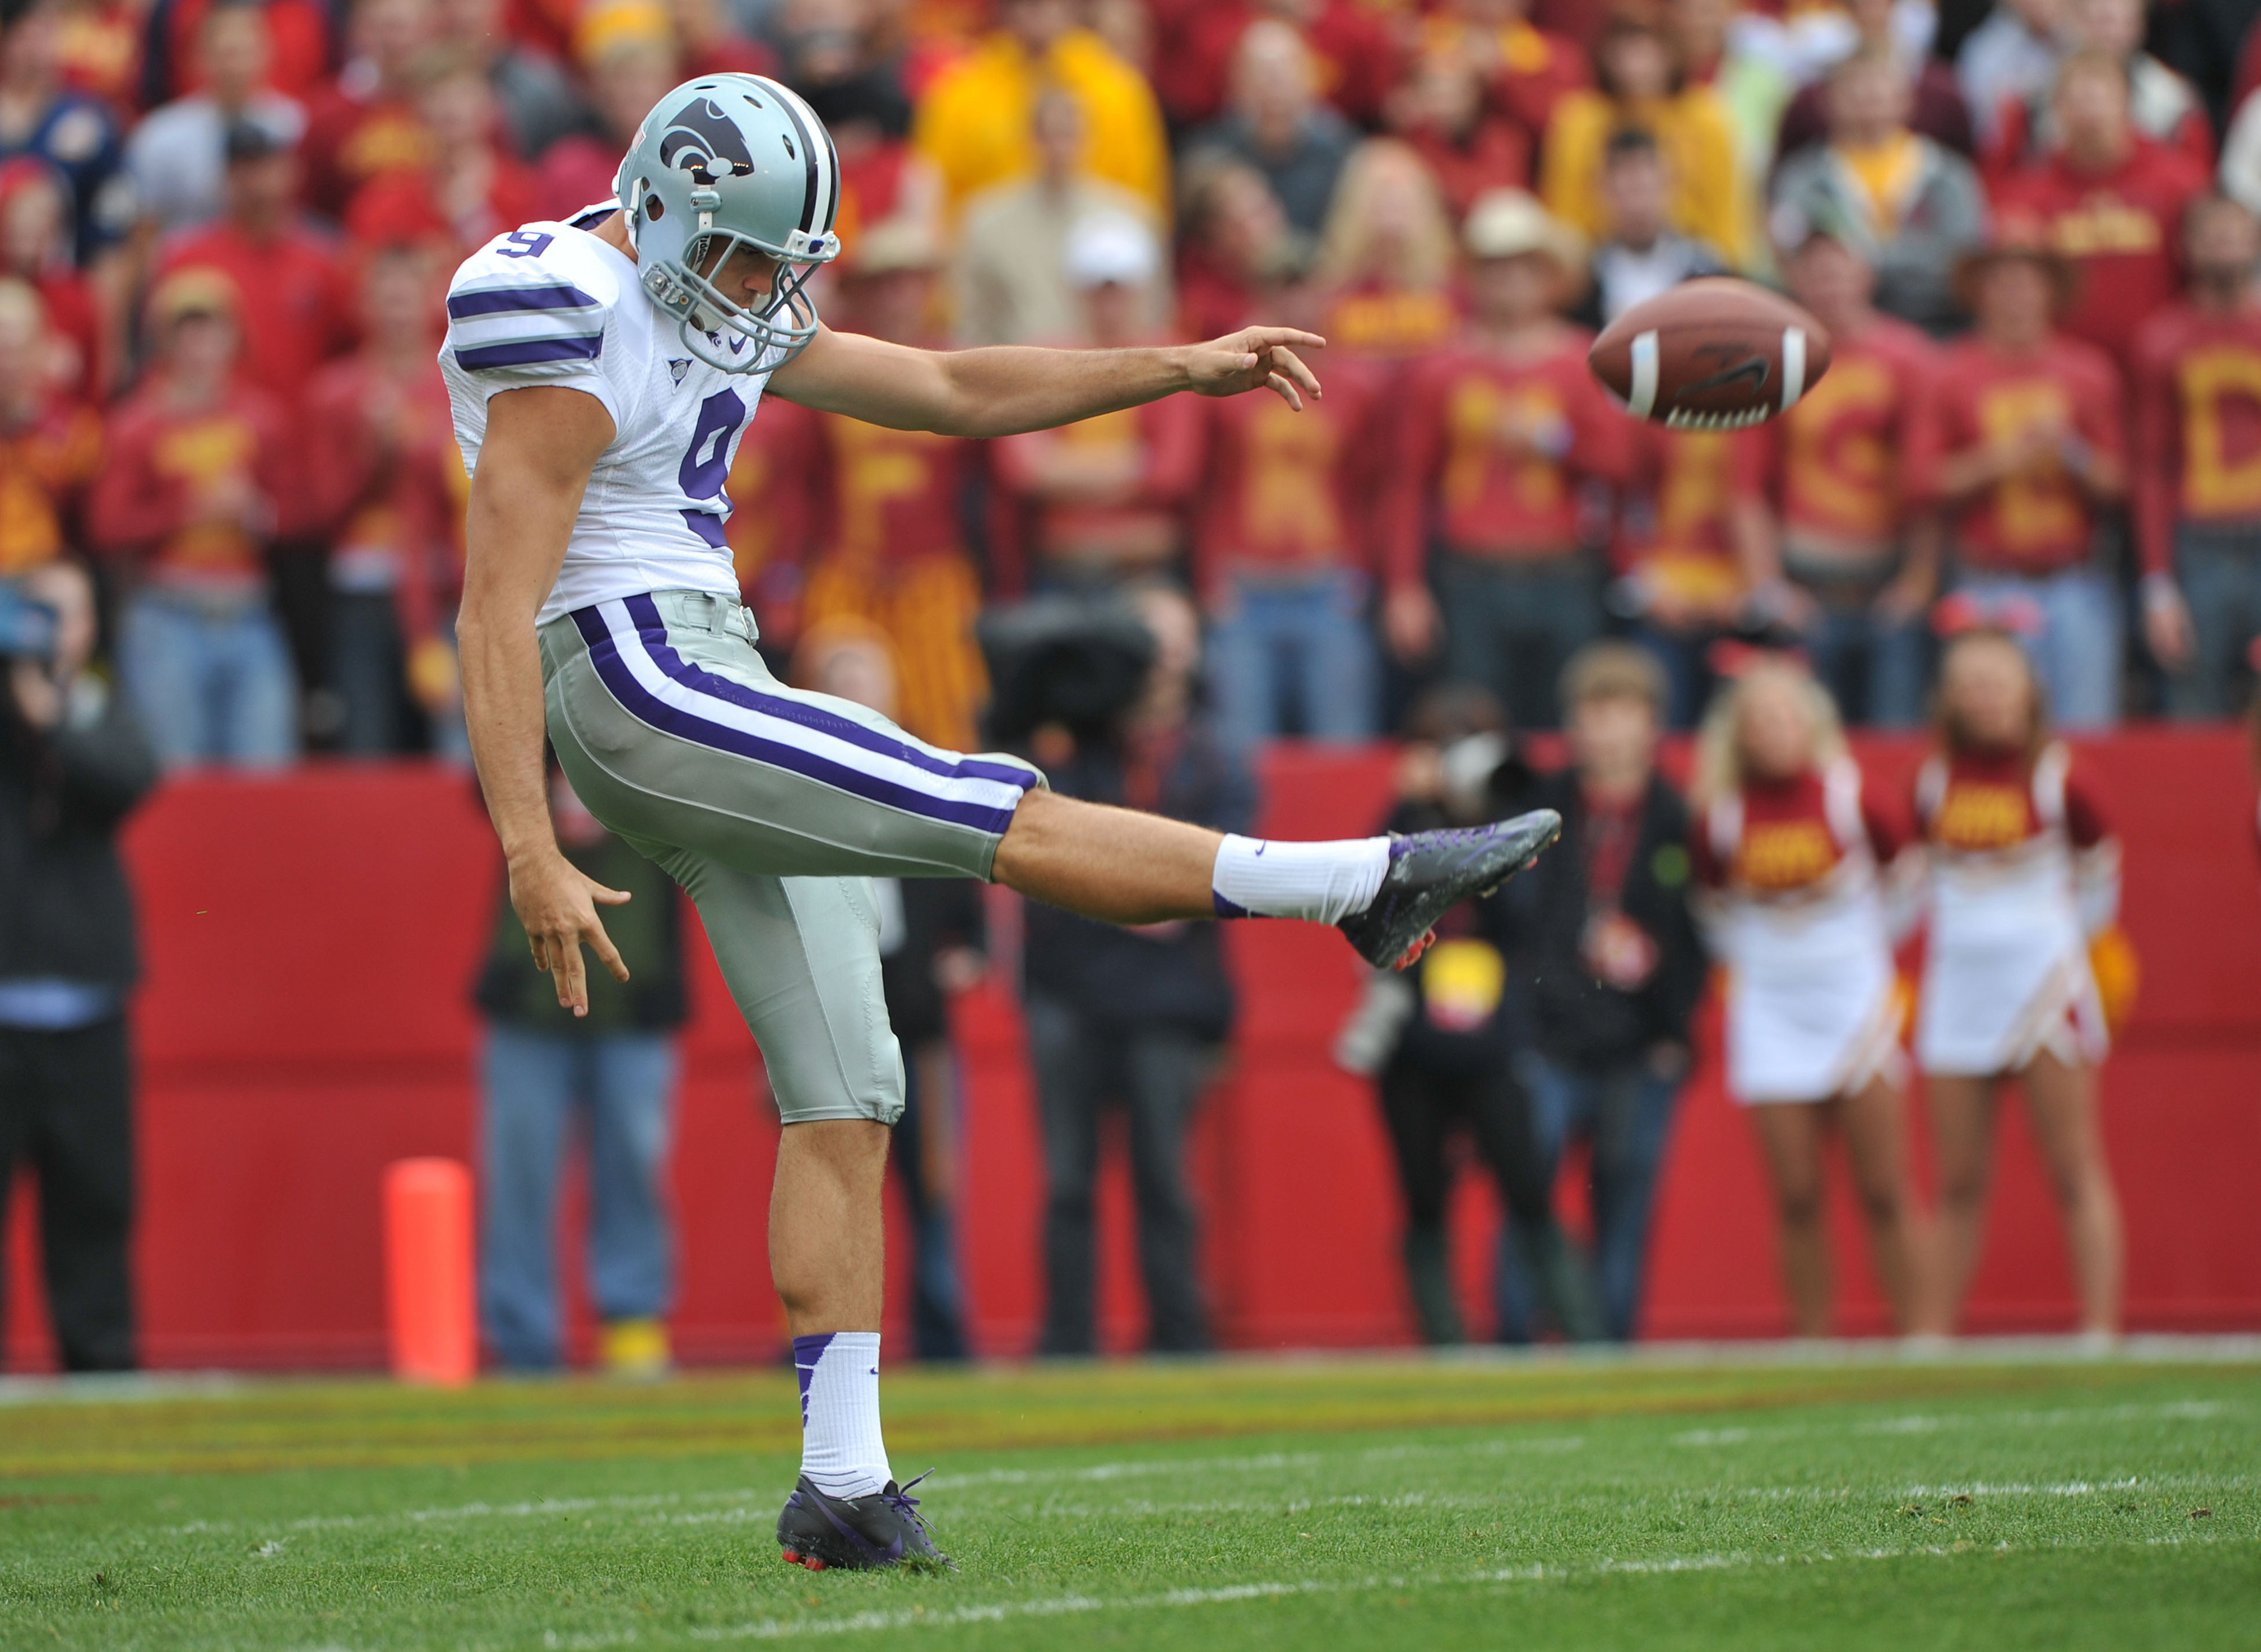 Our punter very well could look like this for the next four seasons, too.